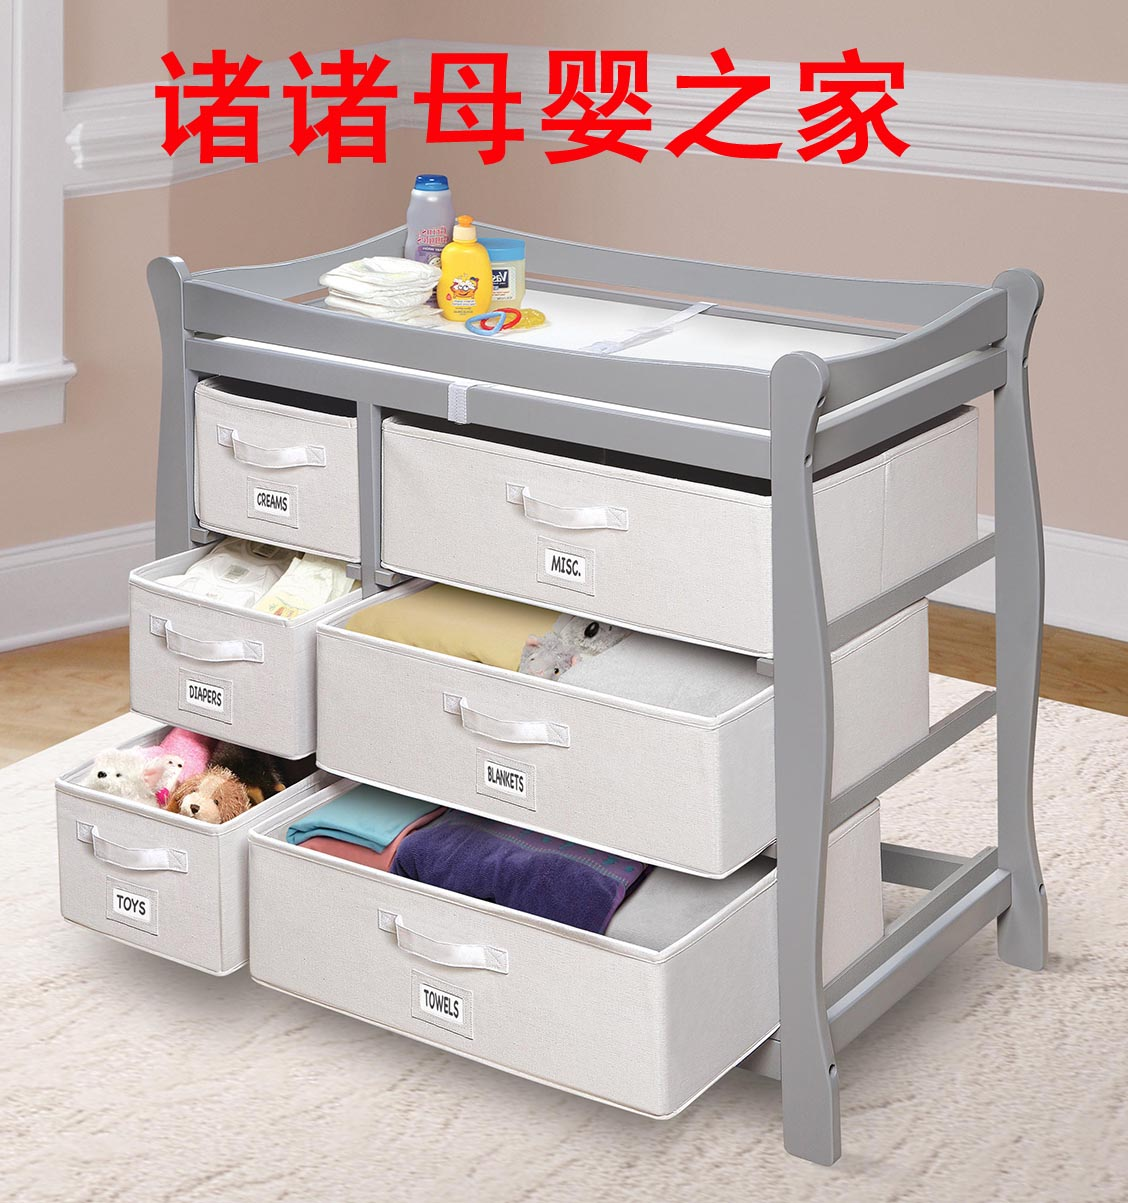 Diaper Table Oak Solid Wood Nursing Baby Bed  Products 6 Cloth Collection Cabinet, Game Bathing